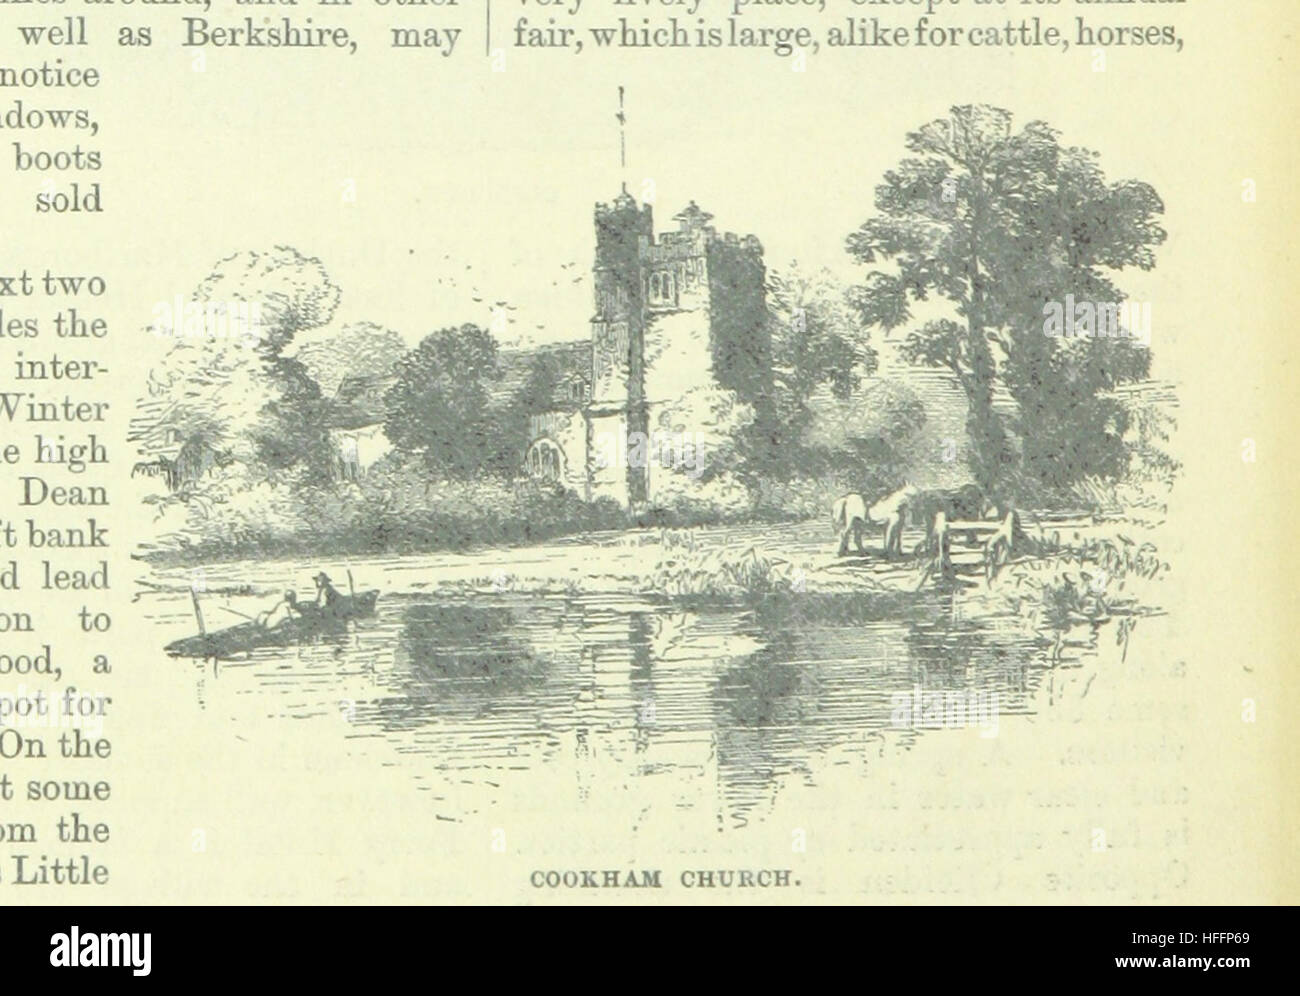 Image taken from page 132 of 'Up the River from Westminster to Windsor and Oxford; a descriptive panorama of - Stock Image